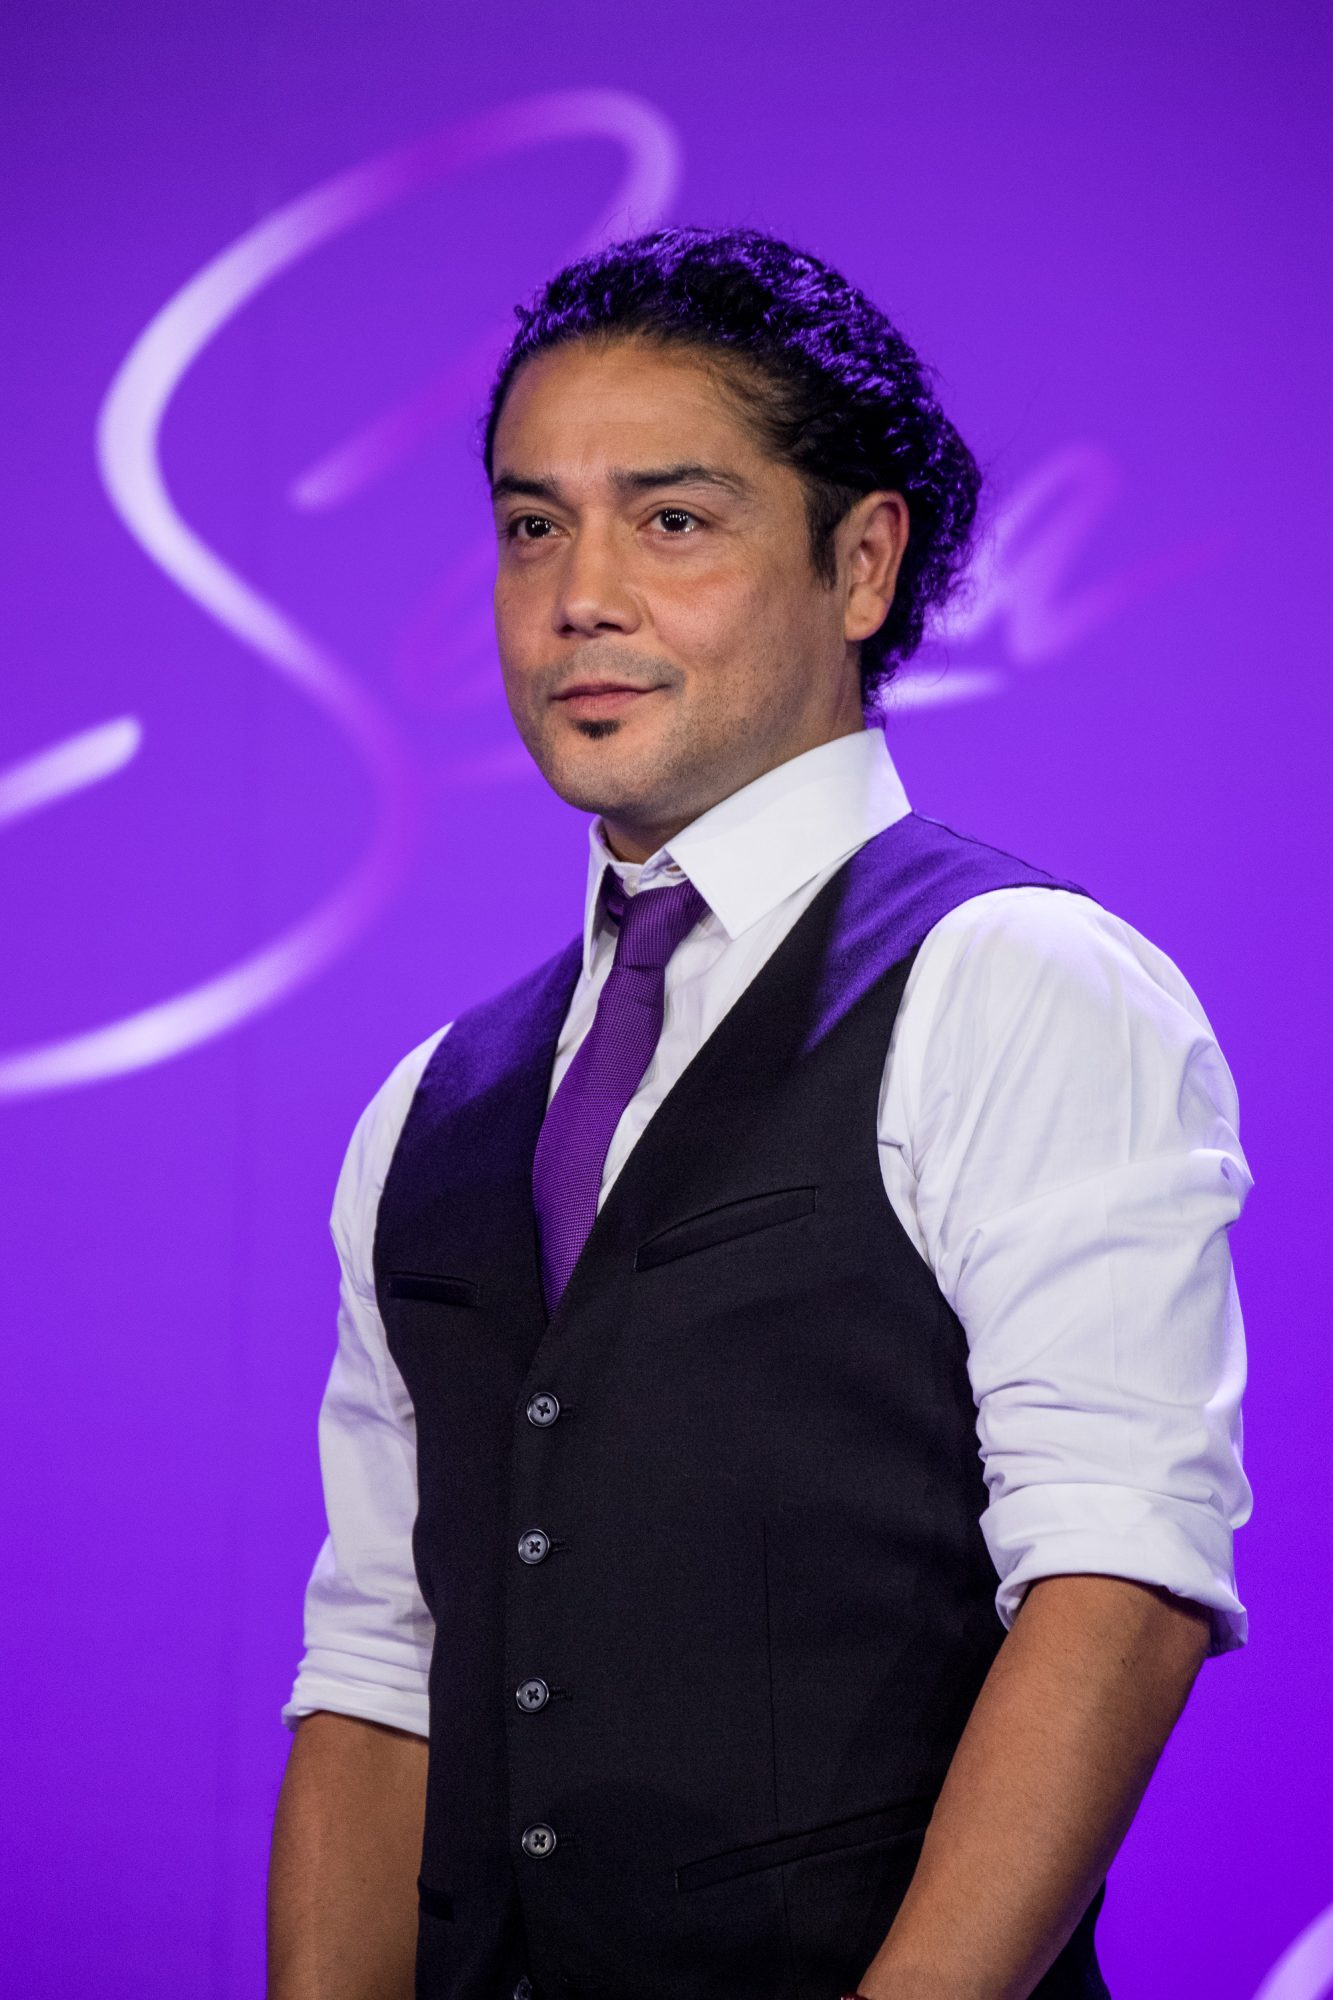 Chris Pérez